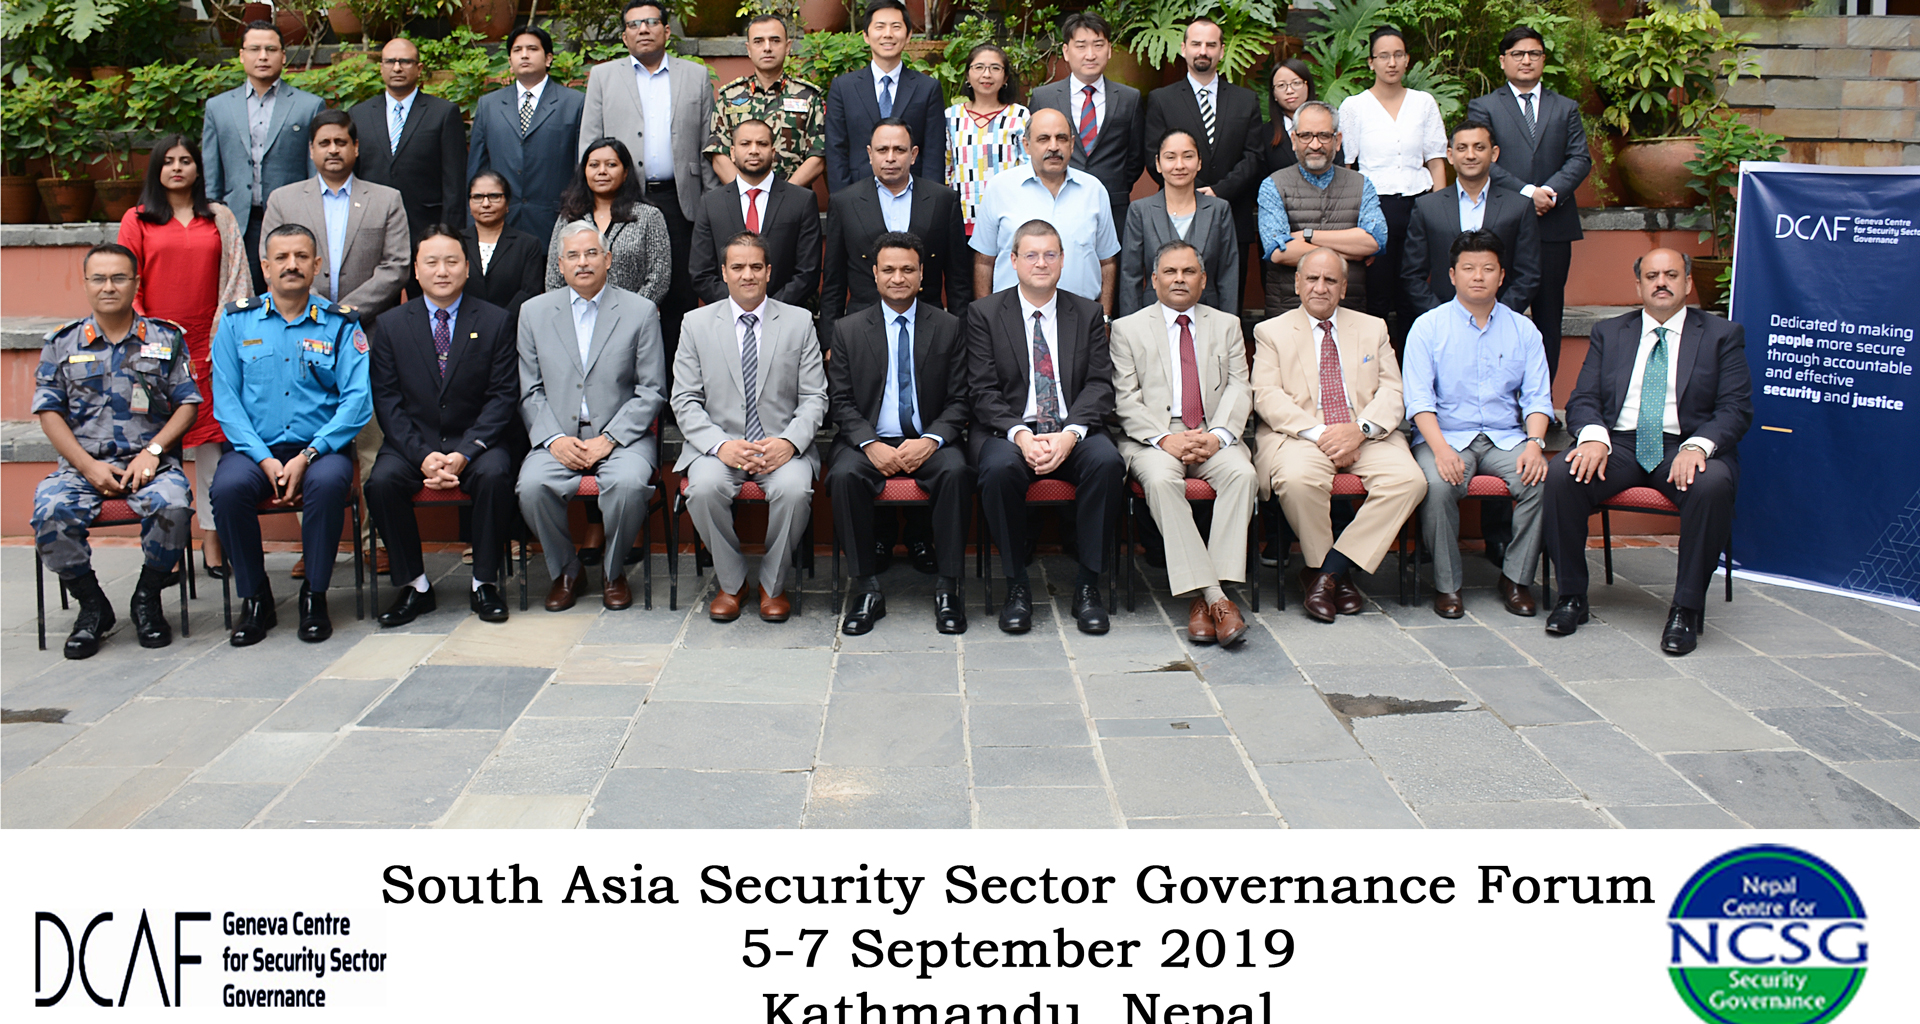 South Asia Security Sector Governance Forum 2019